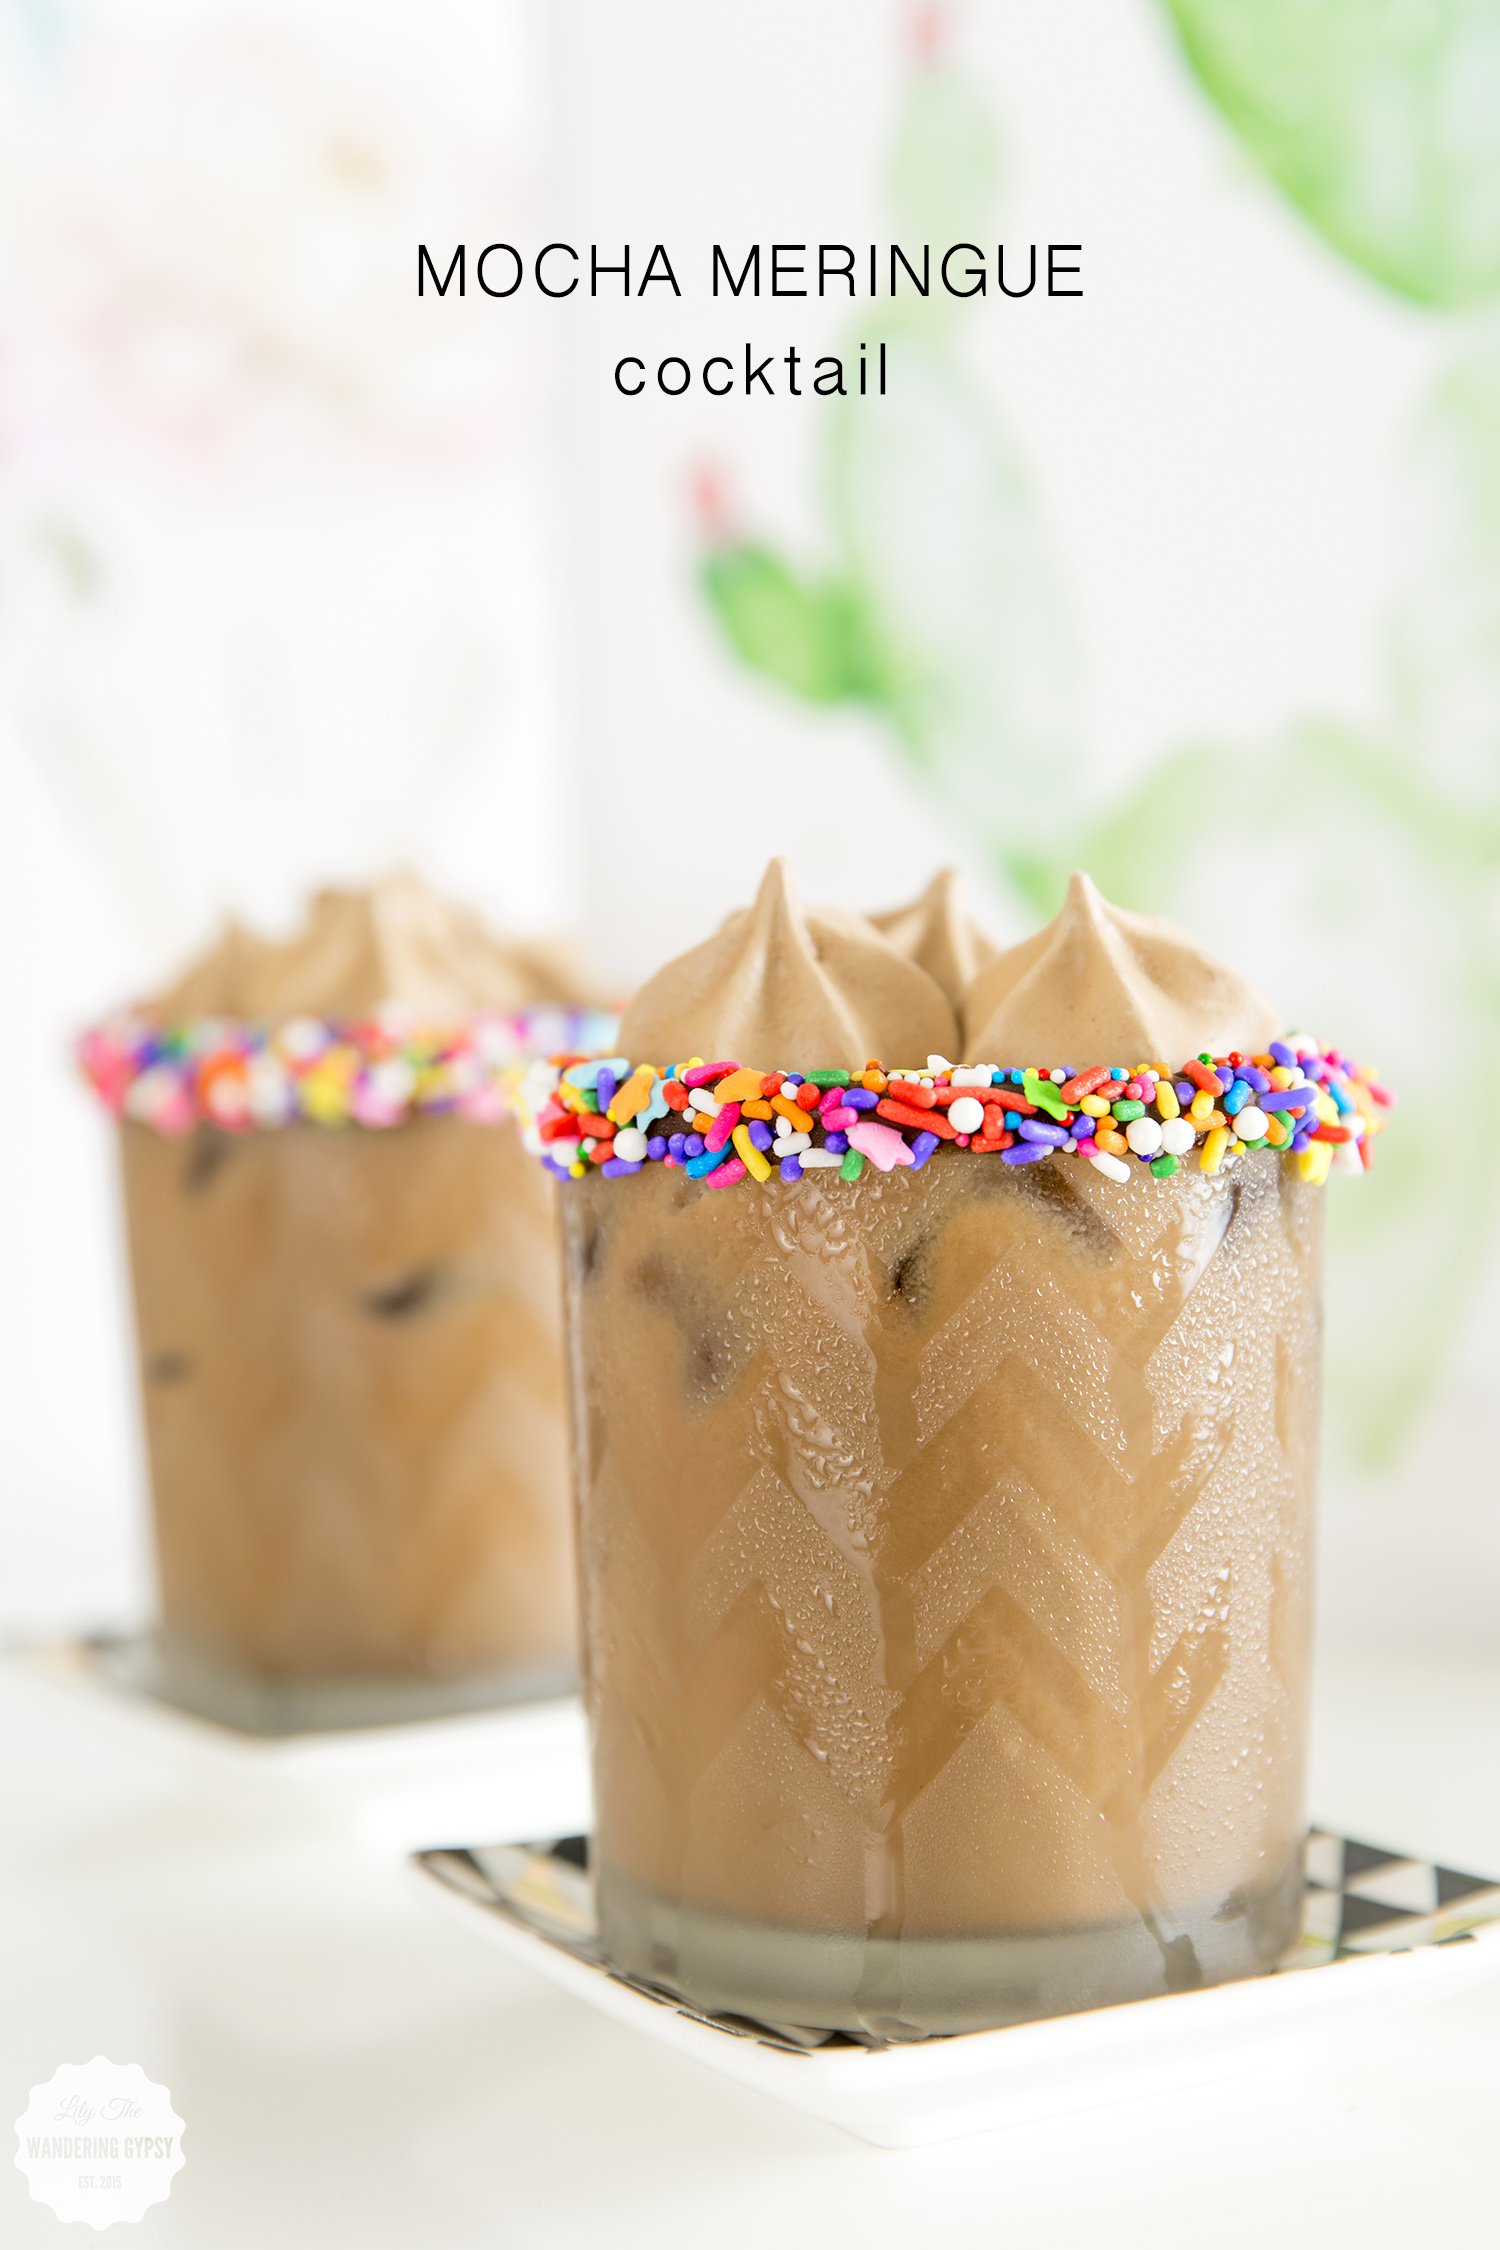 yummy mocha meringue cocktail